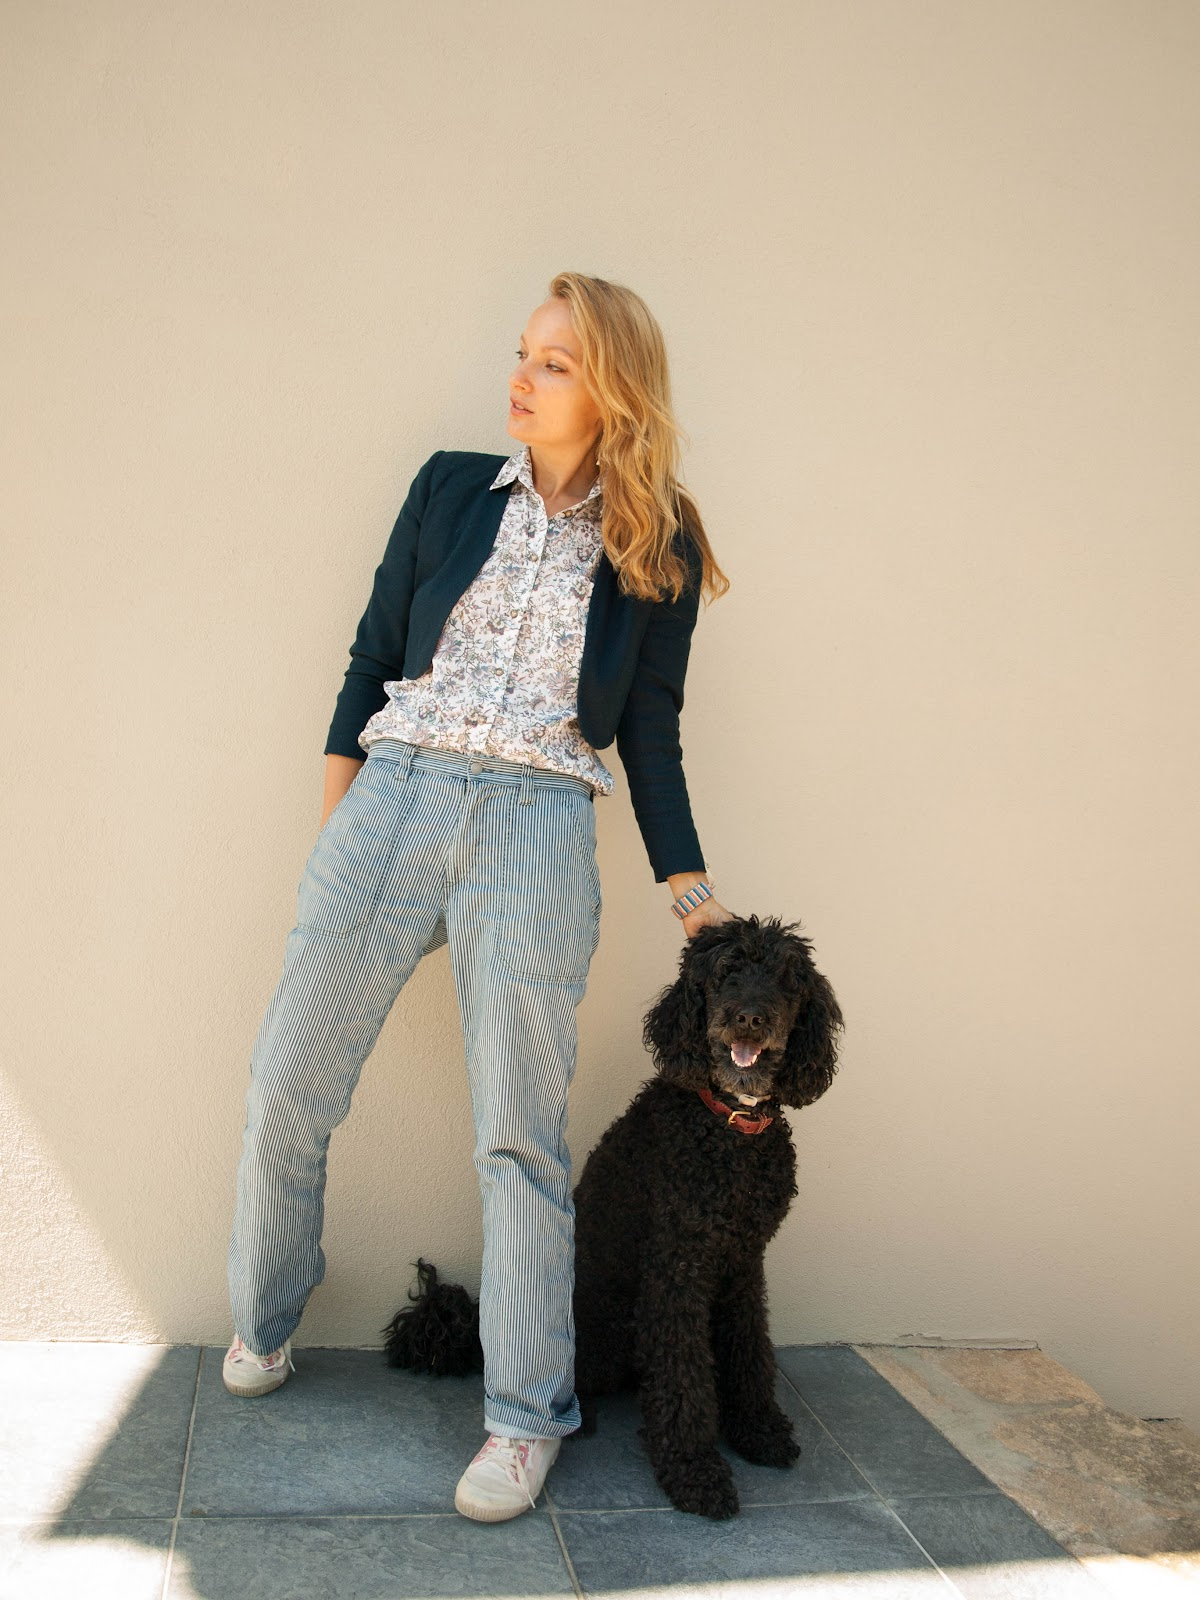 Isabel marant striped pants, Carven jacket, Liberty print blouse, Giant Poodle, tennis shoes